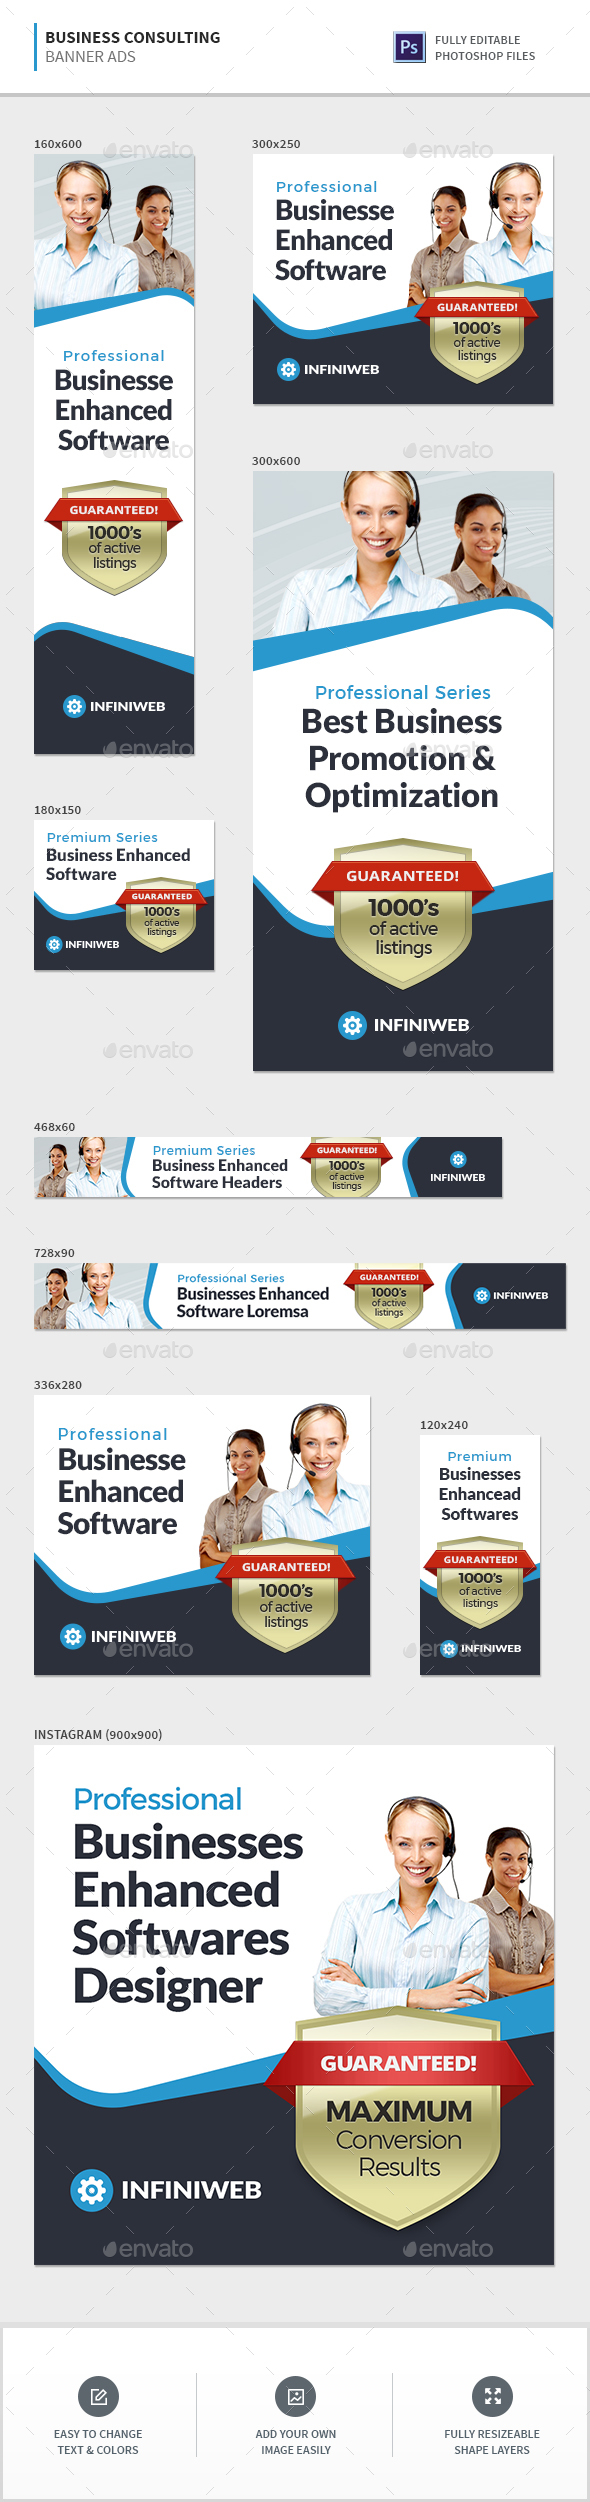 Business Consulting Banners - Banners & Ads Web Elements